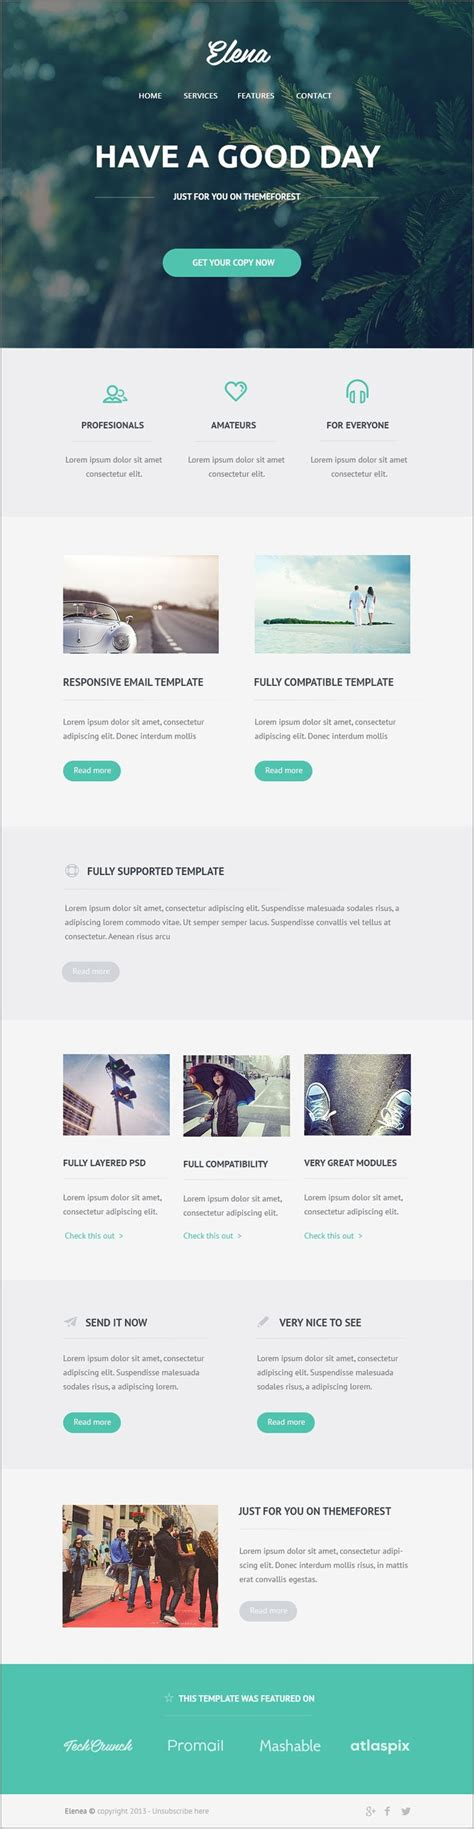 92 Best Newsletters Images On Pinterest Email Newsletters Email Newsletter Design And Email Templates For Web Designers And Developers